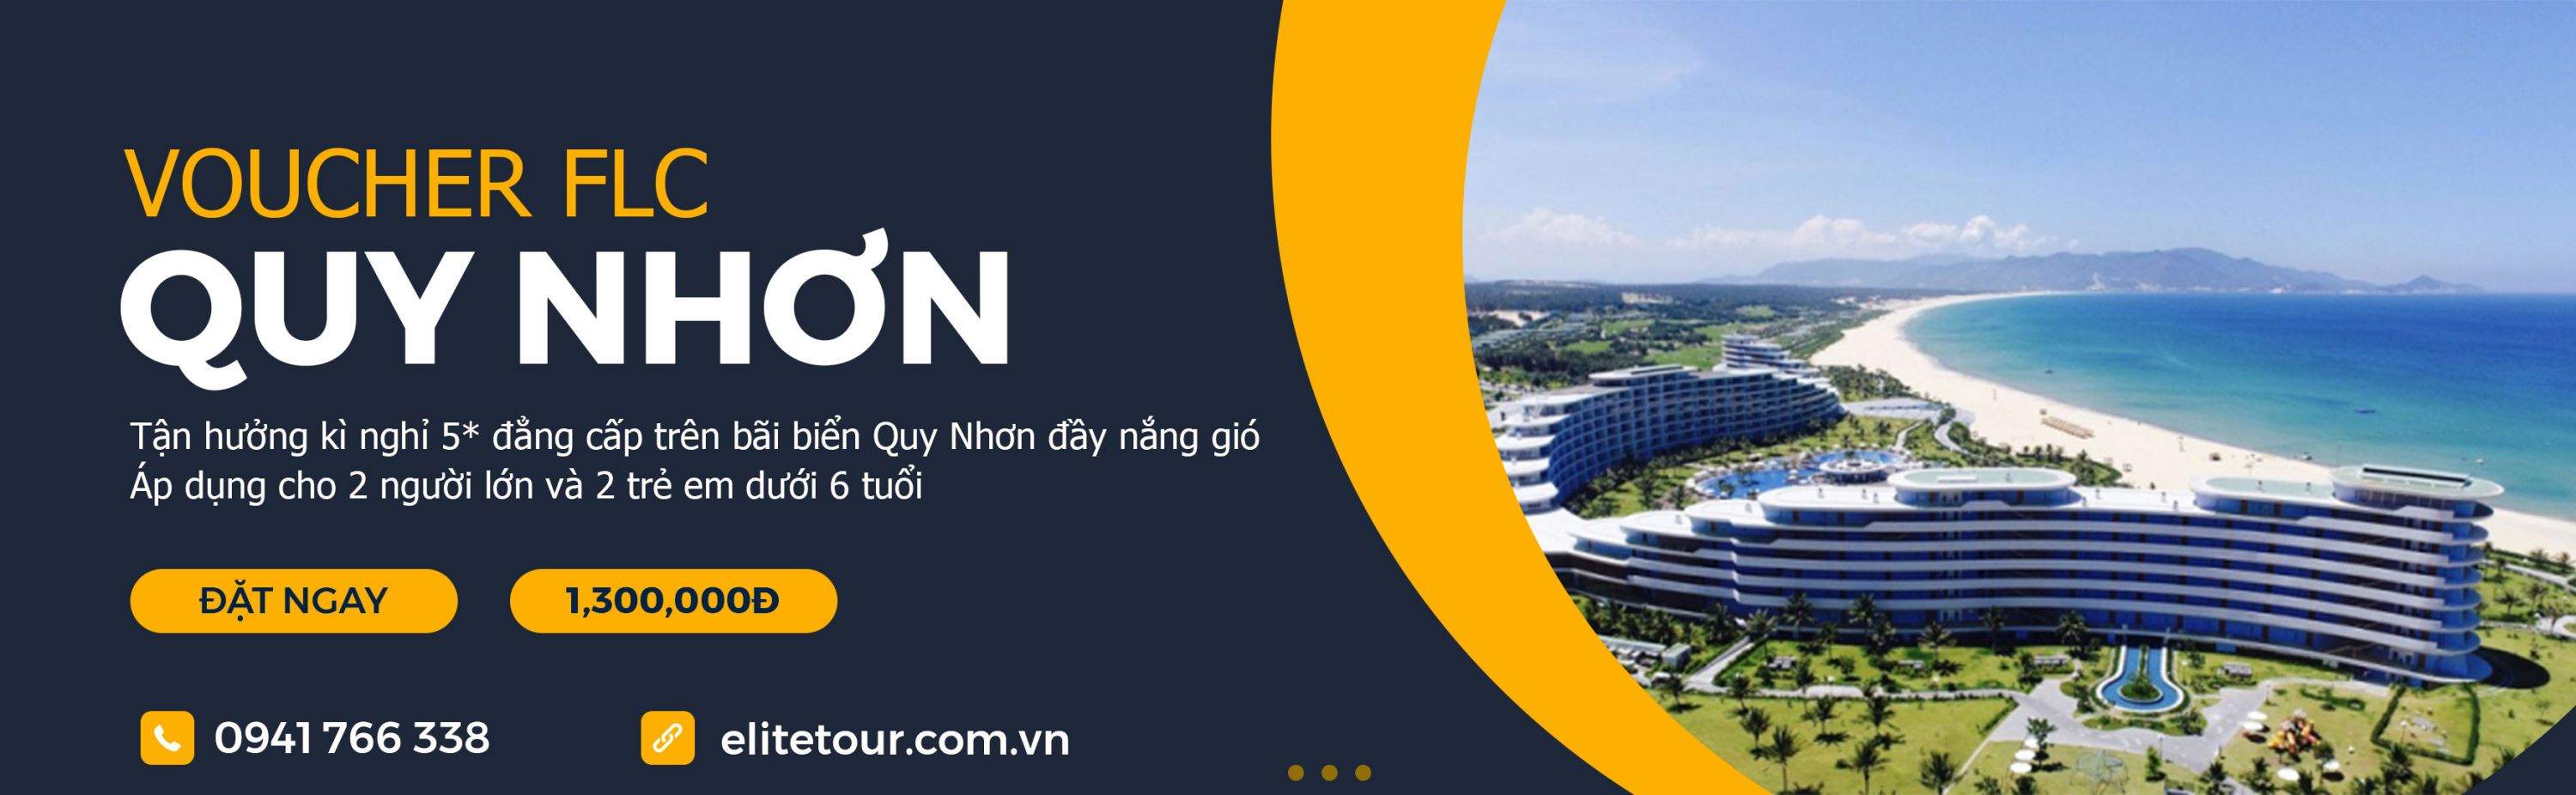 /files/images/Voucher/voucher-flc-quy-nhon.jpg